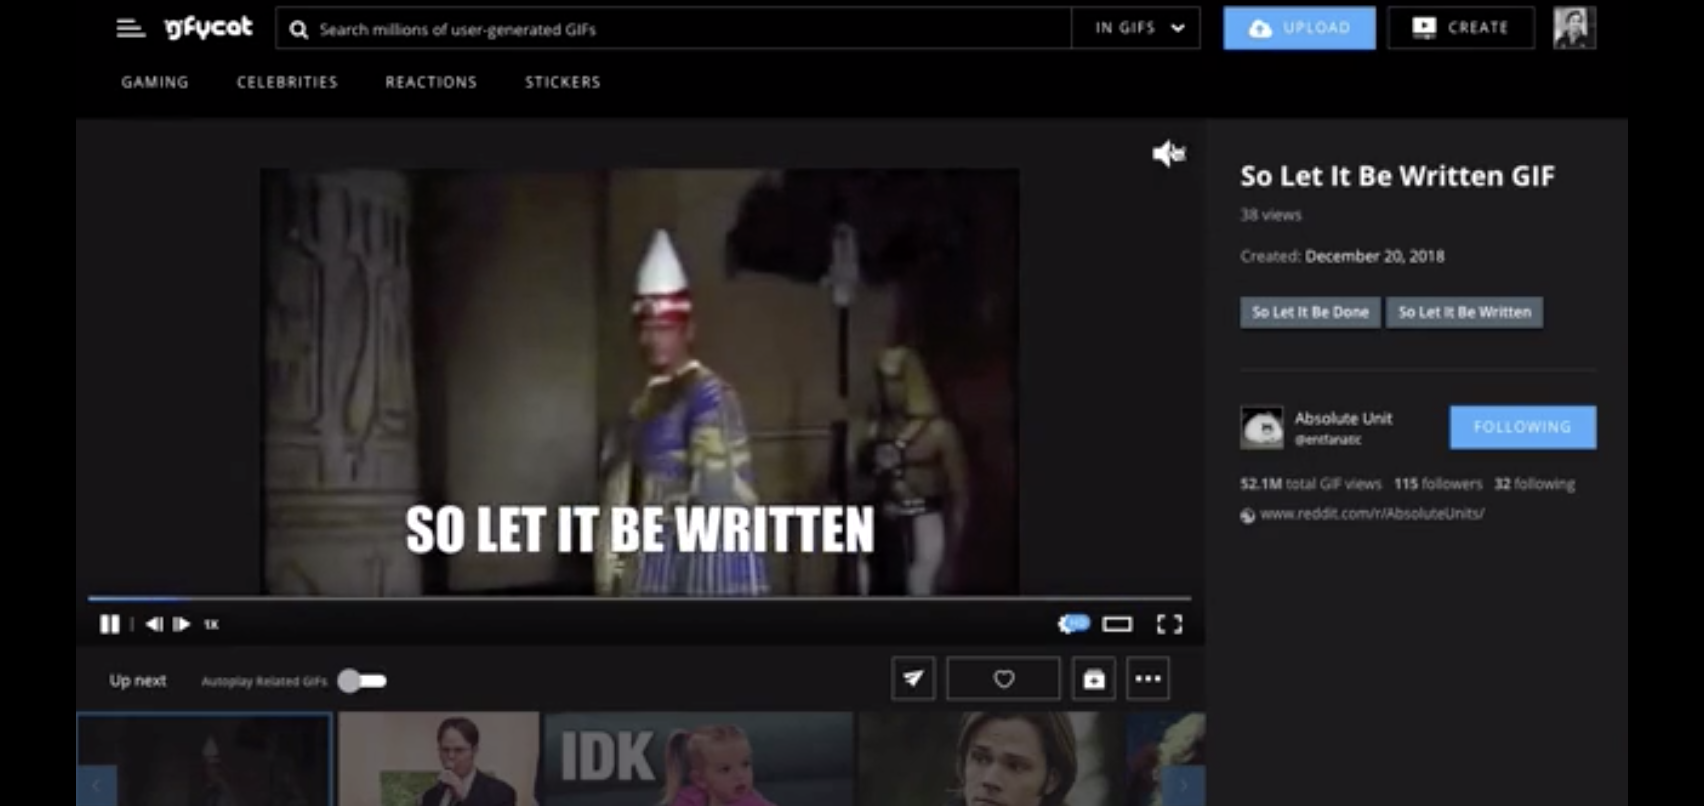 Gfycat's 'GIFs' can now keep the sound on | TechCrunch